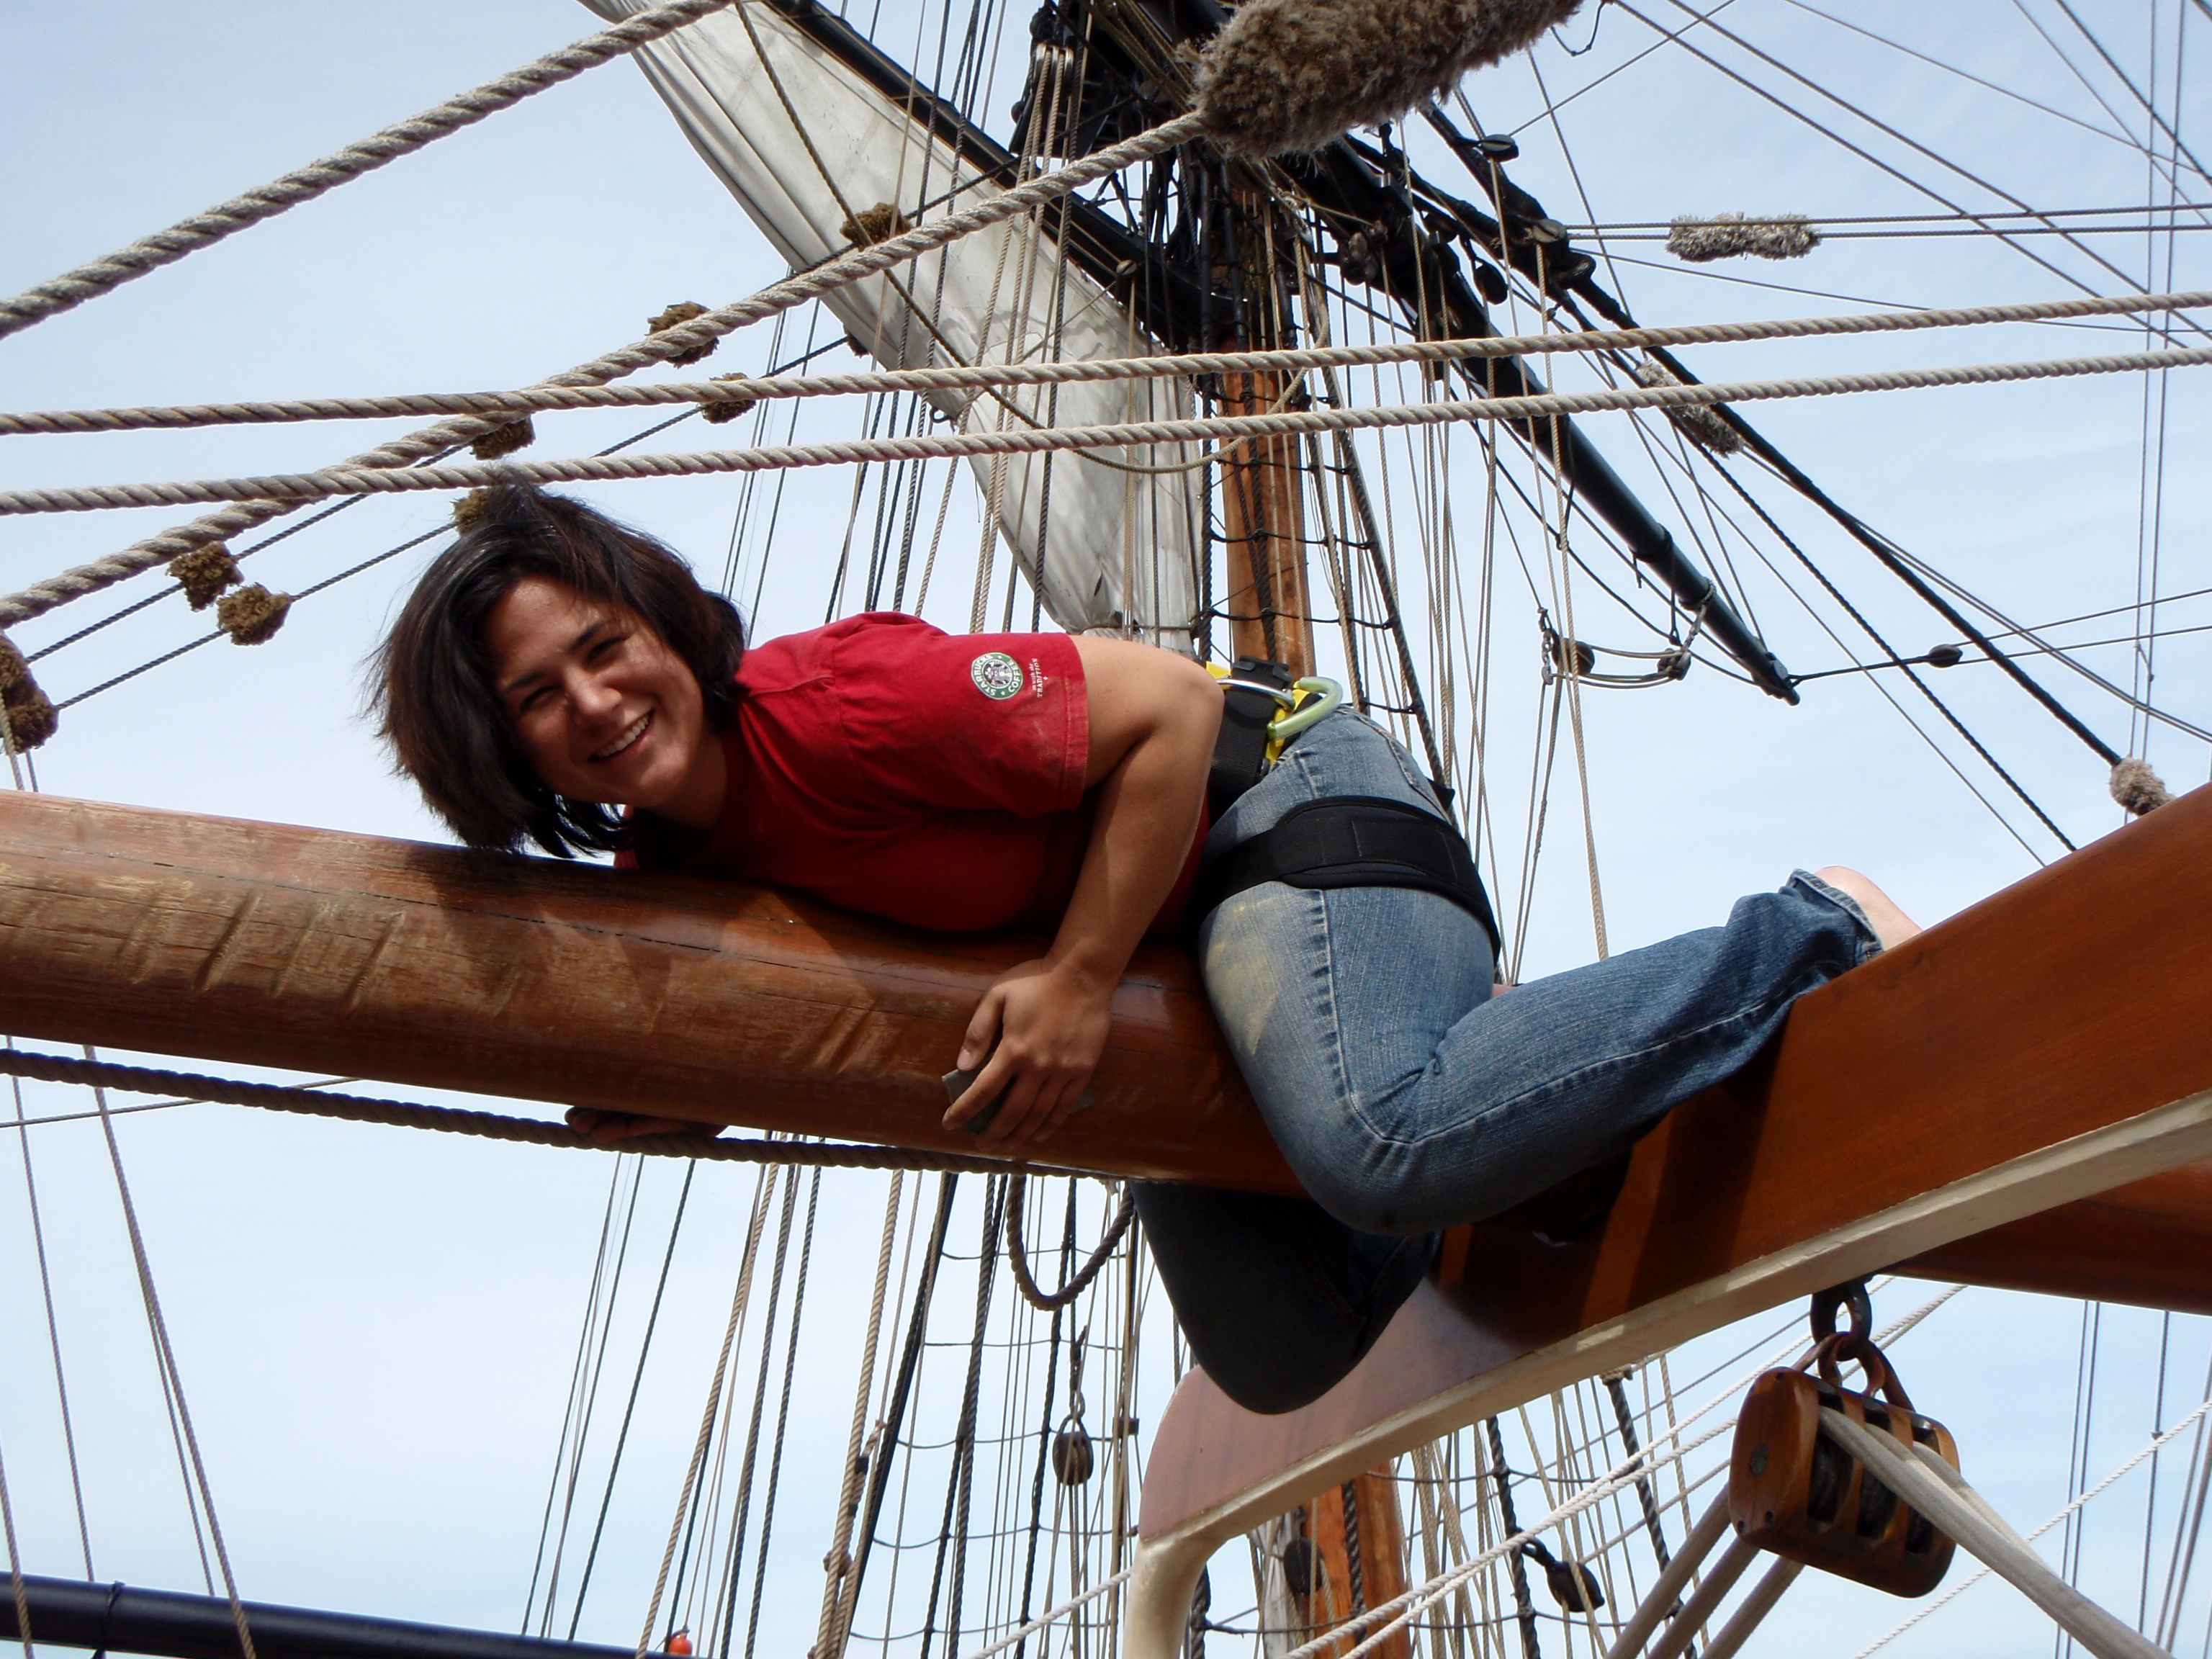 Sarita refinishing the mainboom on the Sailing Vessel Hawaiian Chieftain